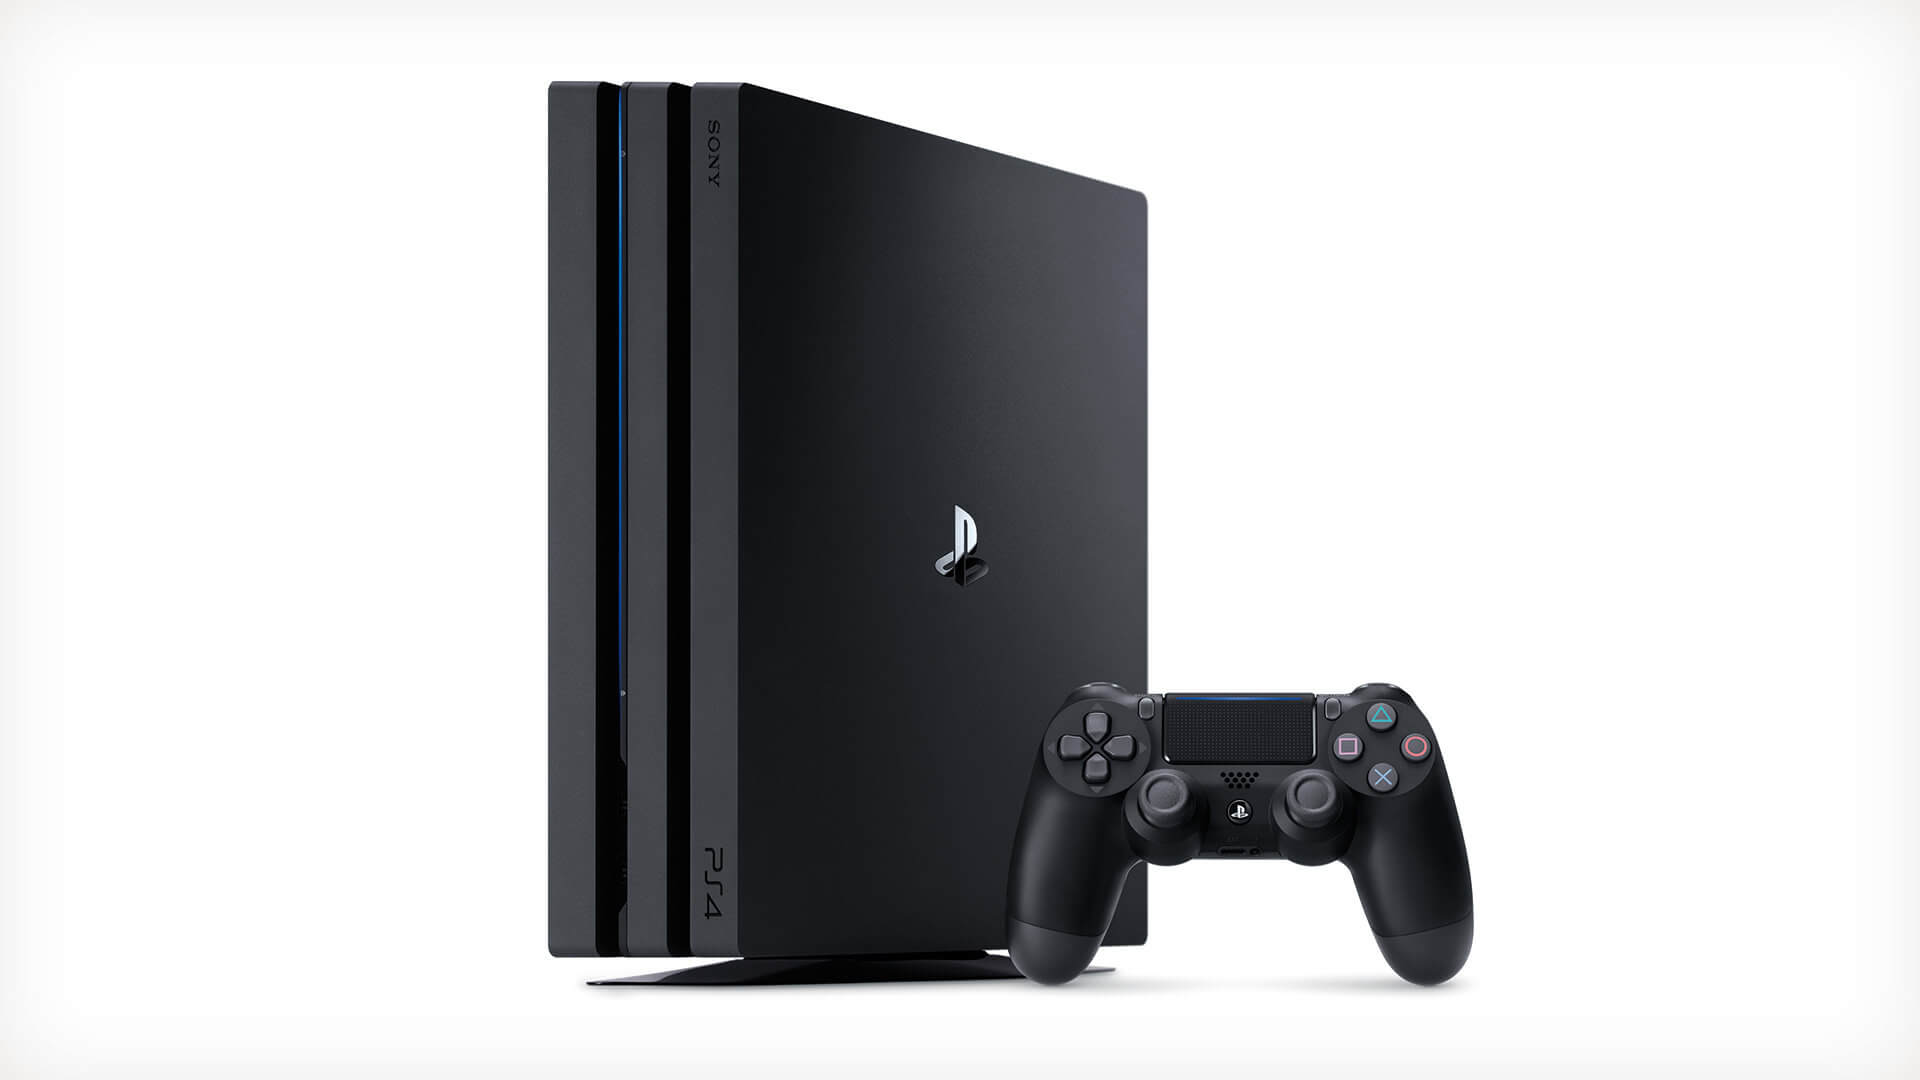 The PlayStation 4 Pro in its vertical stance.